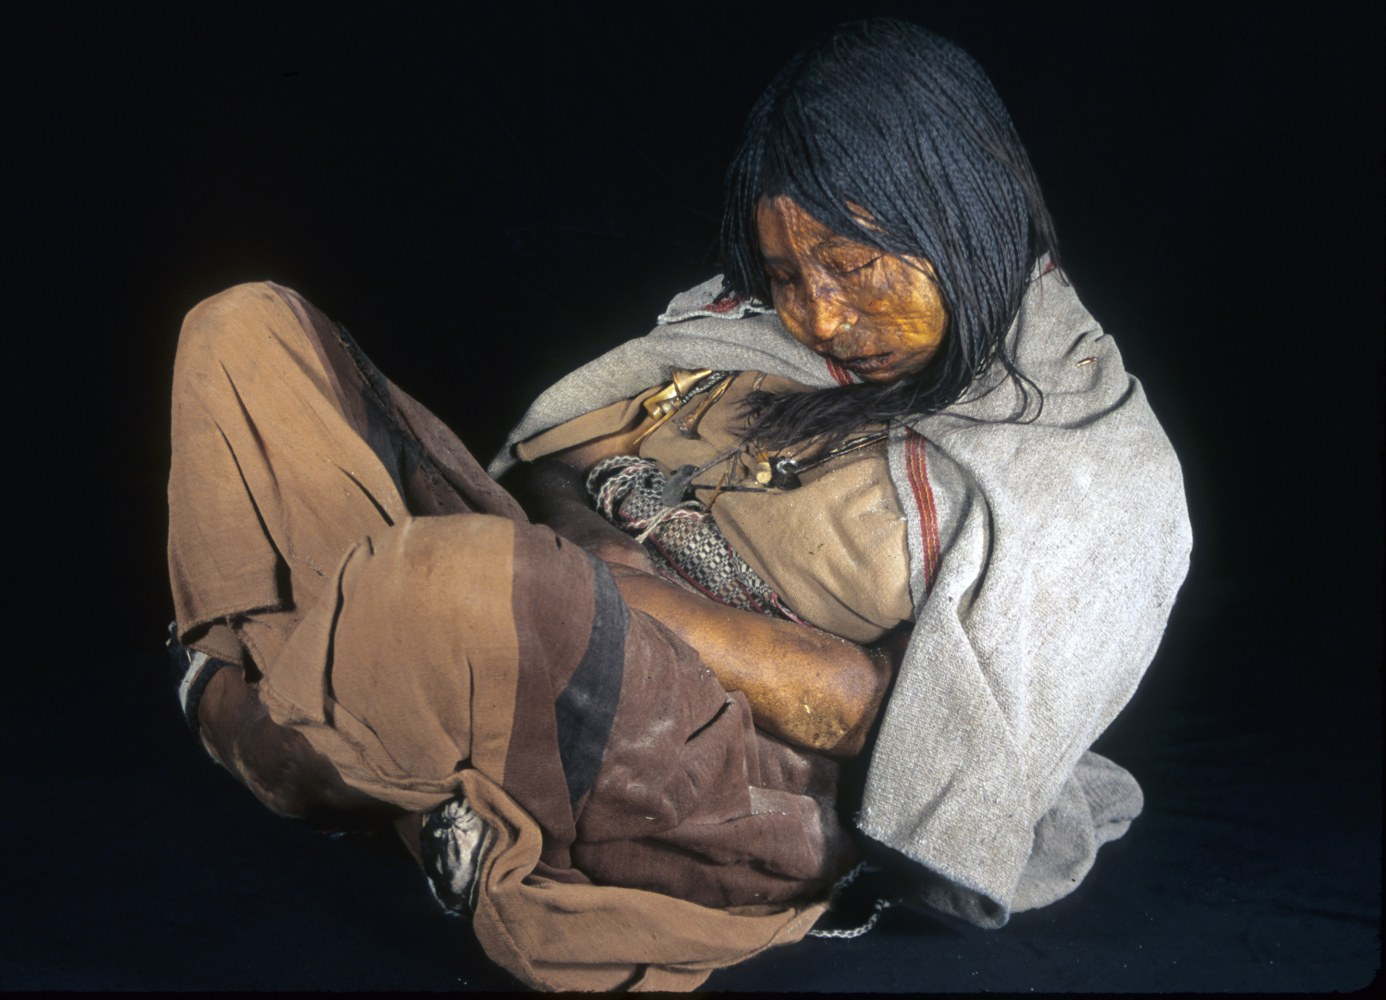 Inca Child Sacrifices Were Drunk Stoned For Weeks Before